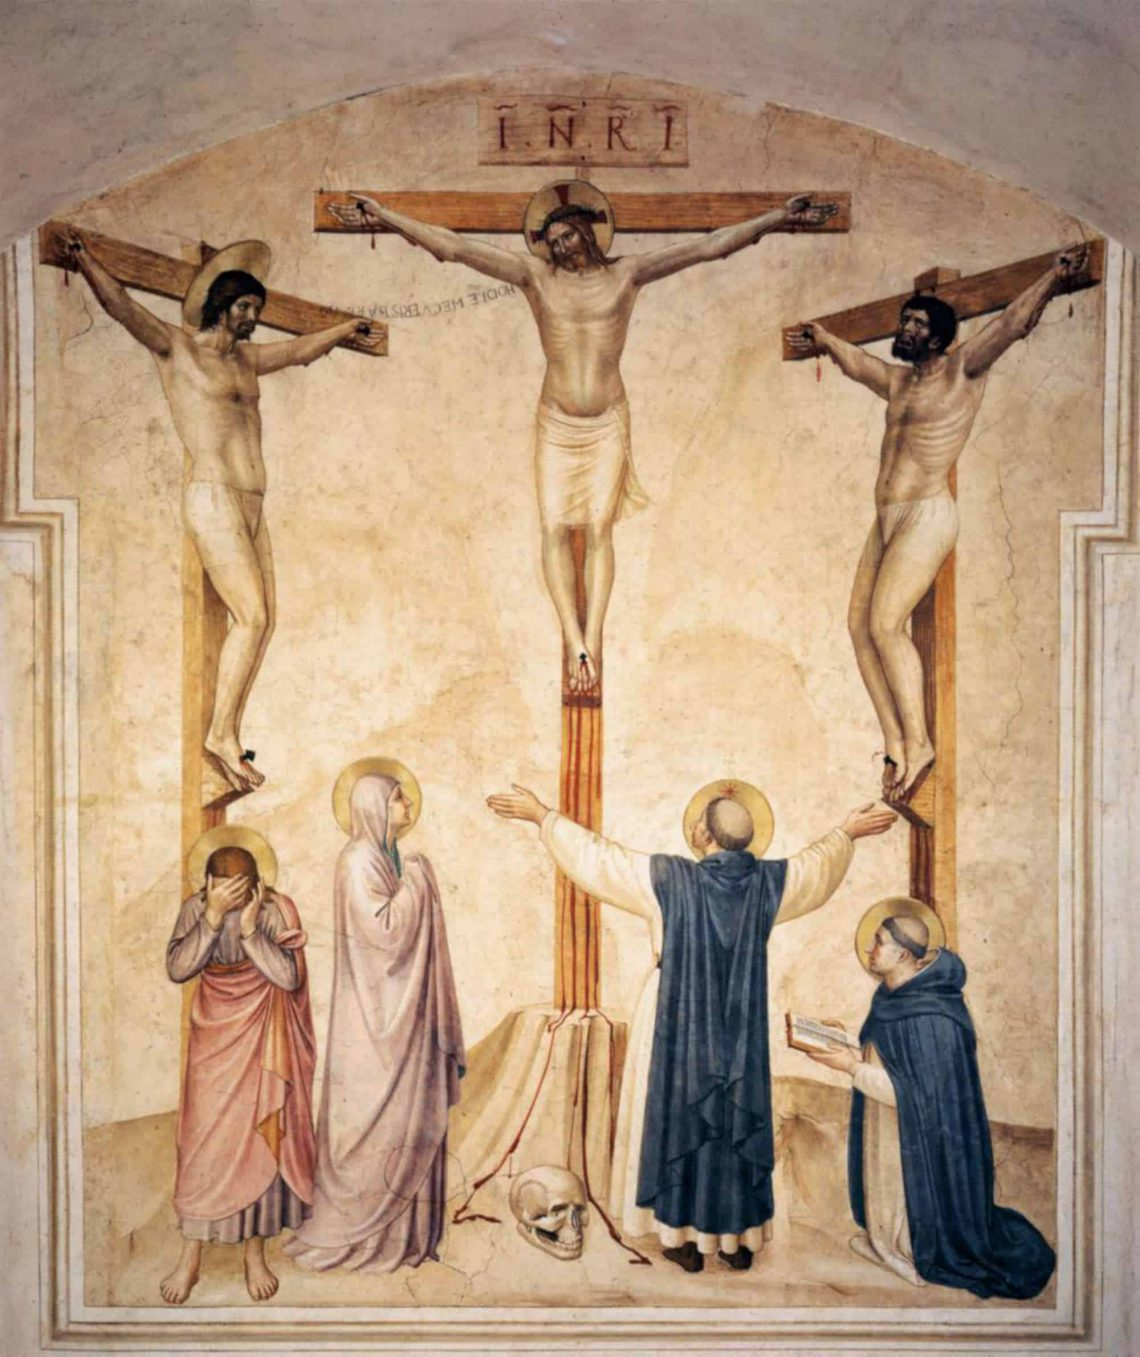 ANGELICO, Fra (b. ca. 1400, Vicchio nell Mugello, d. 1455, Roma)  Crucifixion with Mourners and Sts Dominic and Thomas Aquinas (Cell 37) 1441-42 Fresco, 213 x 165 cm Convento di San Marco, Florence  This is the fresco on the wall of Cell 37 of the Convento di San Marco in Florence.  The Crucifixion is depicted in seven cells in the corridor for lay brothers. While the friars and novices may have been moved to prayer at the thought or sight of the crucified Christ, the lay brothers required more direction in imagining the Passion. By incorporating more narrative elements, these images were able to prompt their devotion more efficaciously. In six cells Fra Angelico included the grieving Virgin and other mourners along with St Dominic or Peter martyr to cue the beholder's response. So it was in Cell 37, the large size of which suggests it may have served as the Chapter Room for the lay brothers as they met each day under the guidance of their own prior.  The contribution of an assistant can be assumed in the execution of this fresco.       --- Keywords: --------------  Author: ANGELICO, Fra Title: Crucifixion with Mourners and Sts Dominic and Thomas Aquinas (Cell 37) Time-line: 1401-1450 School: Italian Form: painting Type: religious